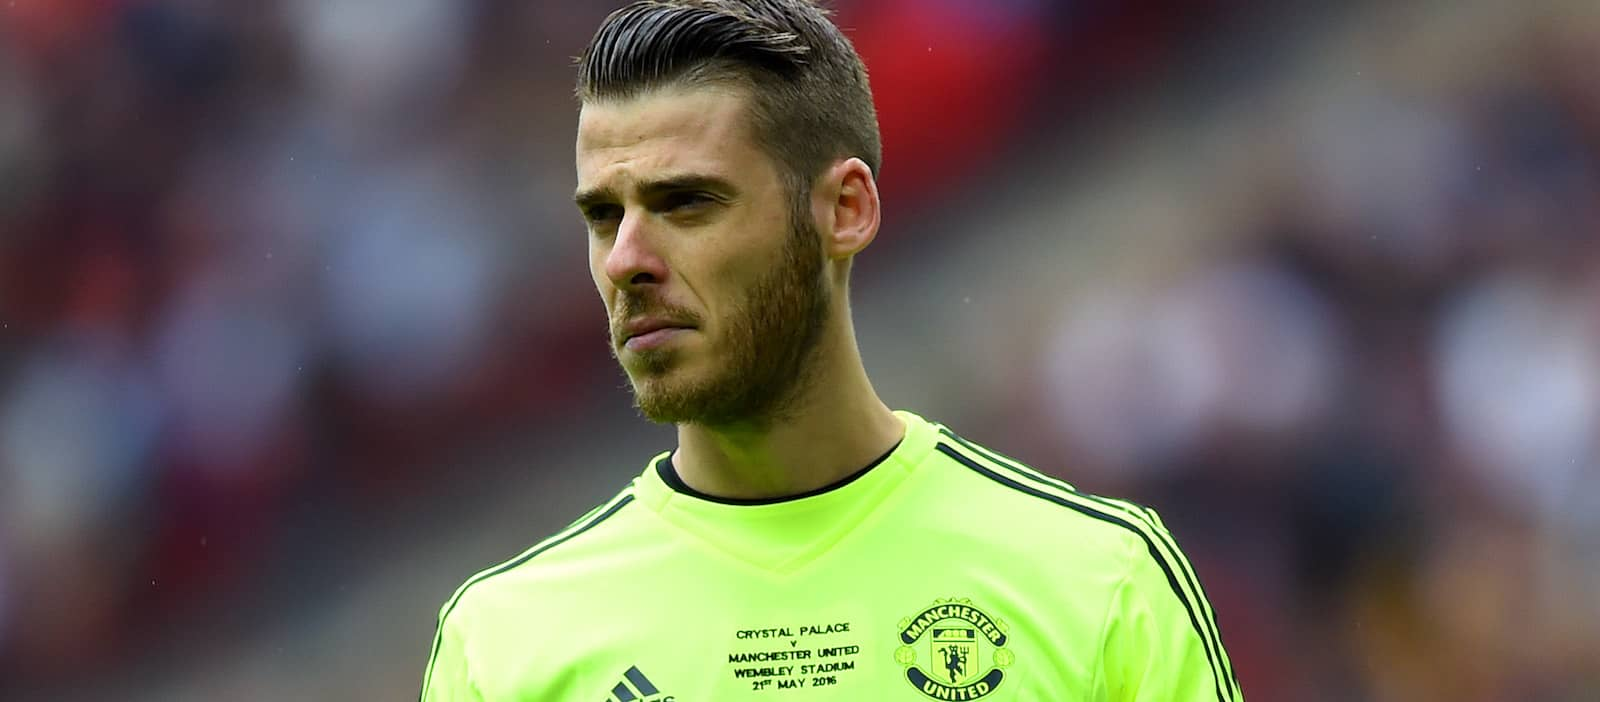 Manchester United fans thrilled with David de Gea's impressive performance for Spain